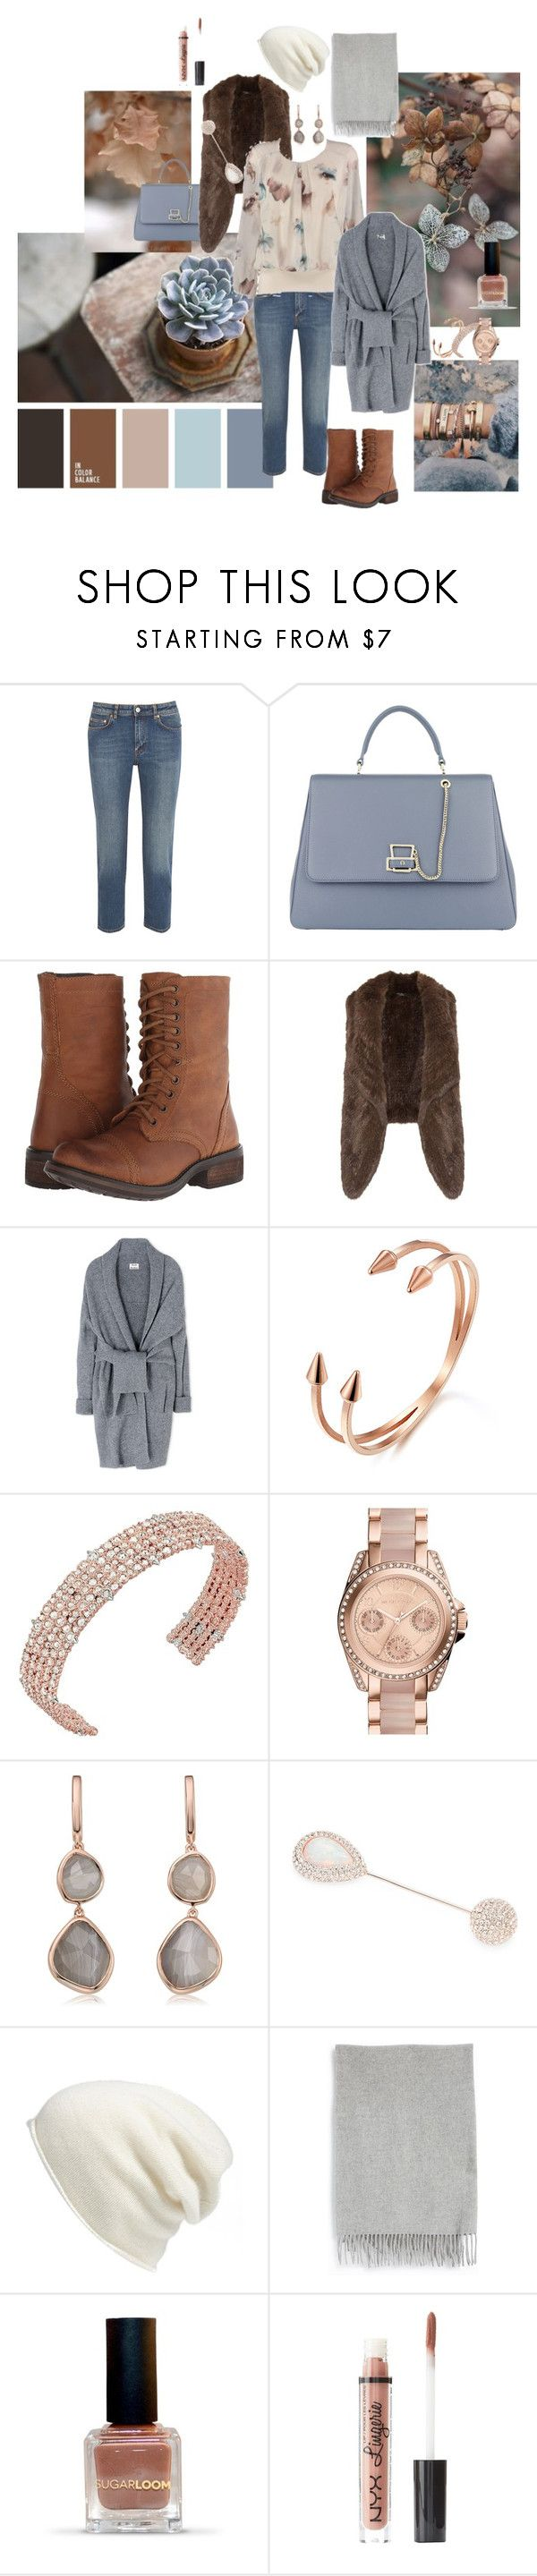 """""""Autumn foliage"""" by arcticjasmine on Polyvore featuring Acne Studios, Etienne Aigner, Steve Madden, Meteo by Yves Salomon, WithChic, Alexis Bittar, Michael Kors, Monica Vinader, Nadri and Halogen"""